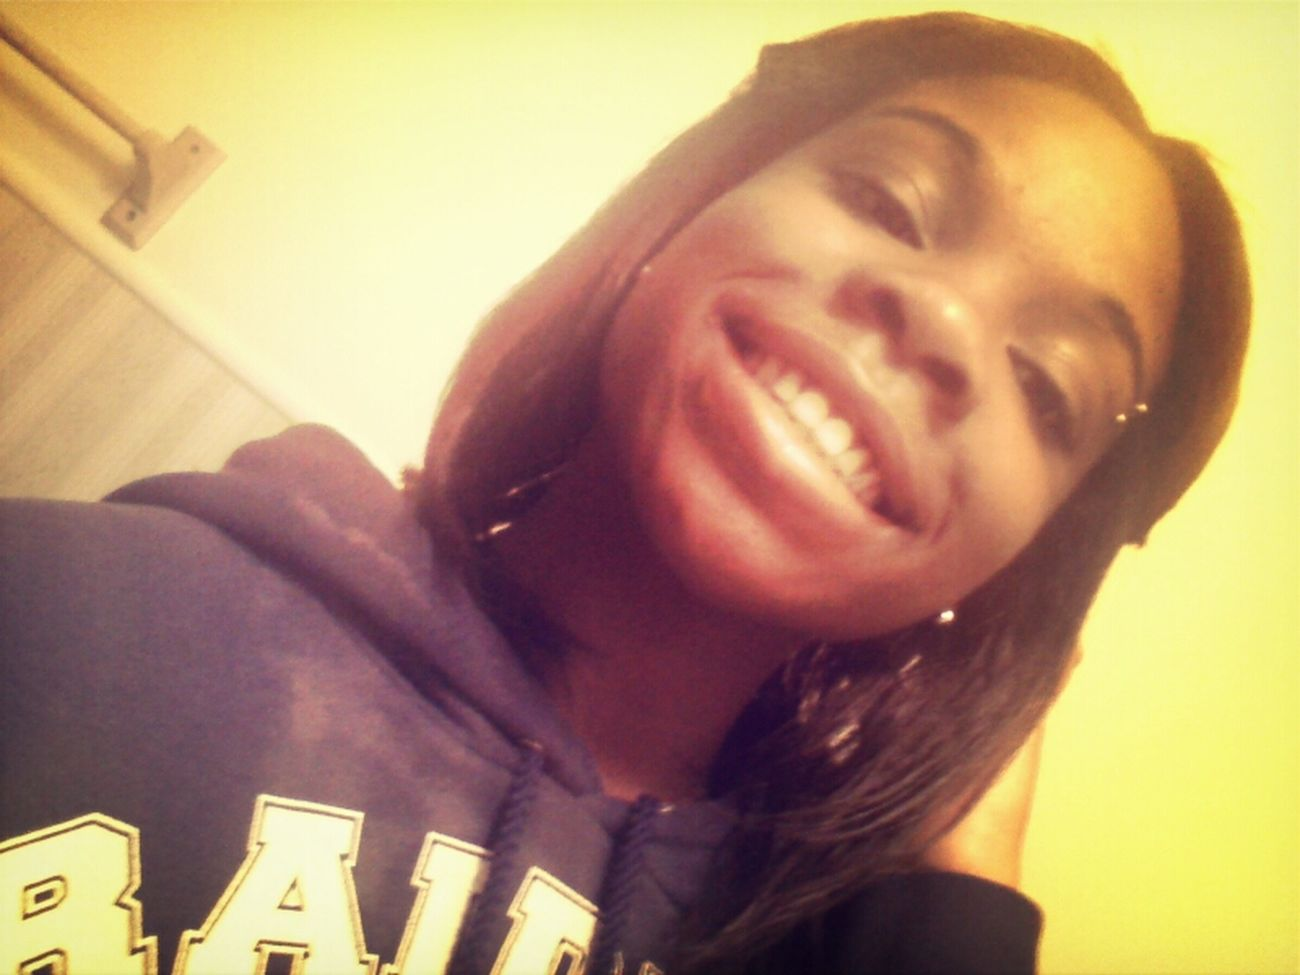 #cheesing #prettyasf #Hhs